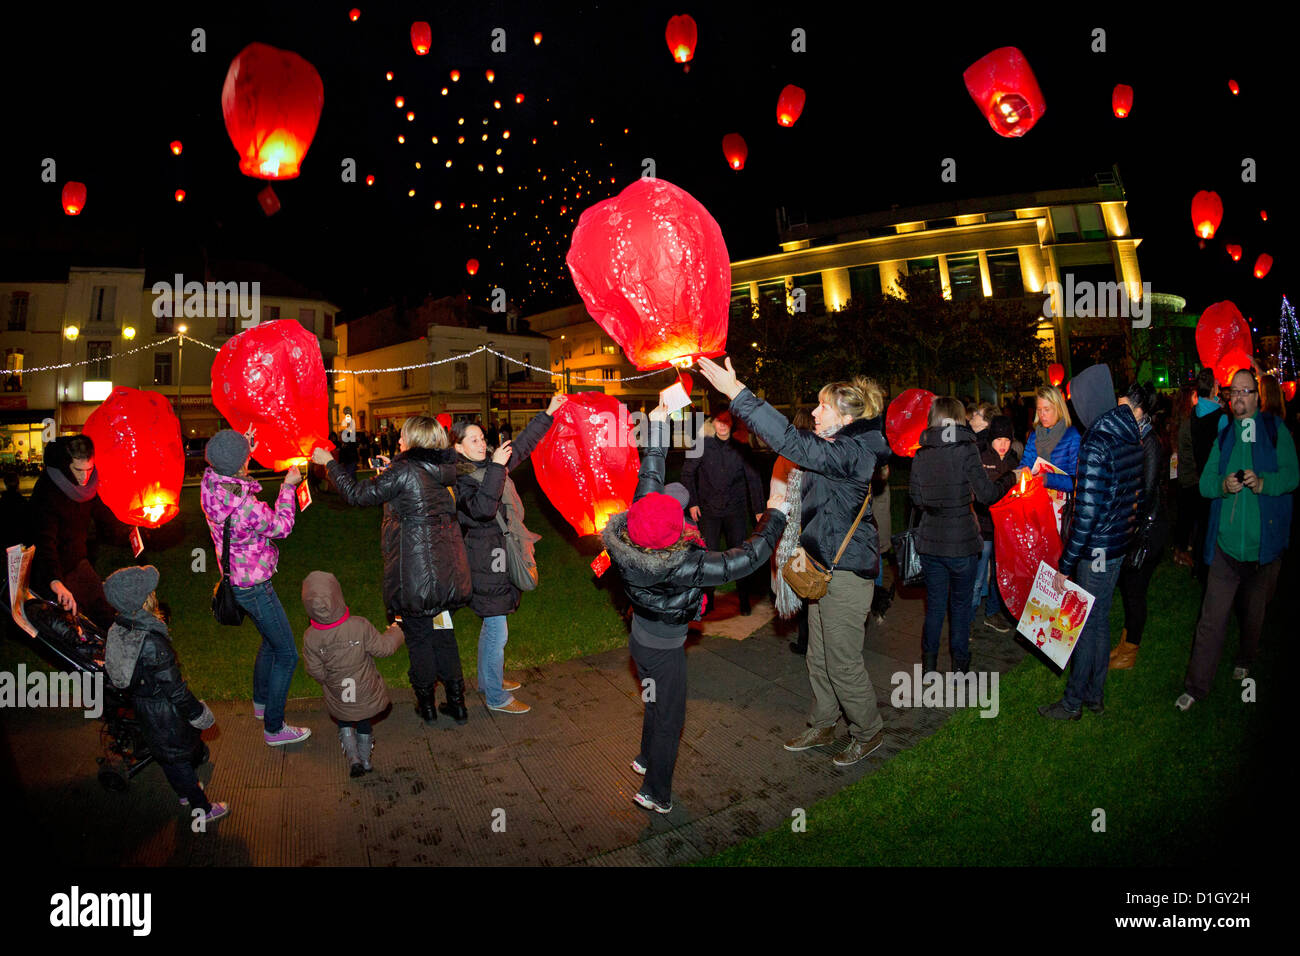 children chinese lanterns stockfotos children chinese lanterns bilder alamy. Black Bedroom Furniture Sets. Home Design Ideas